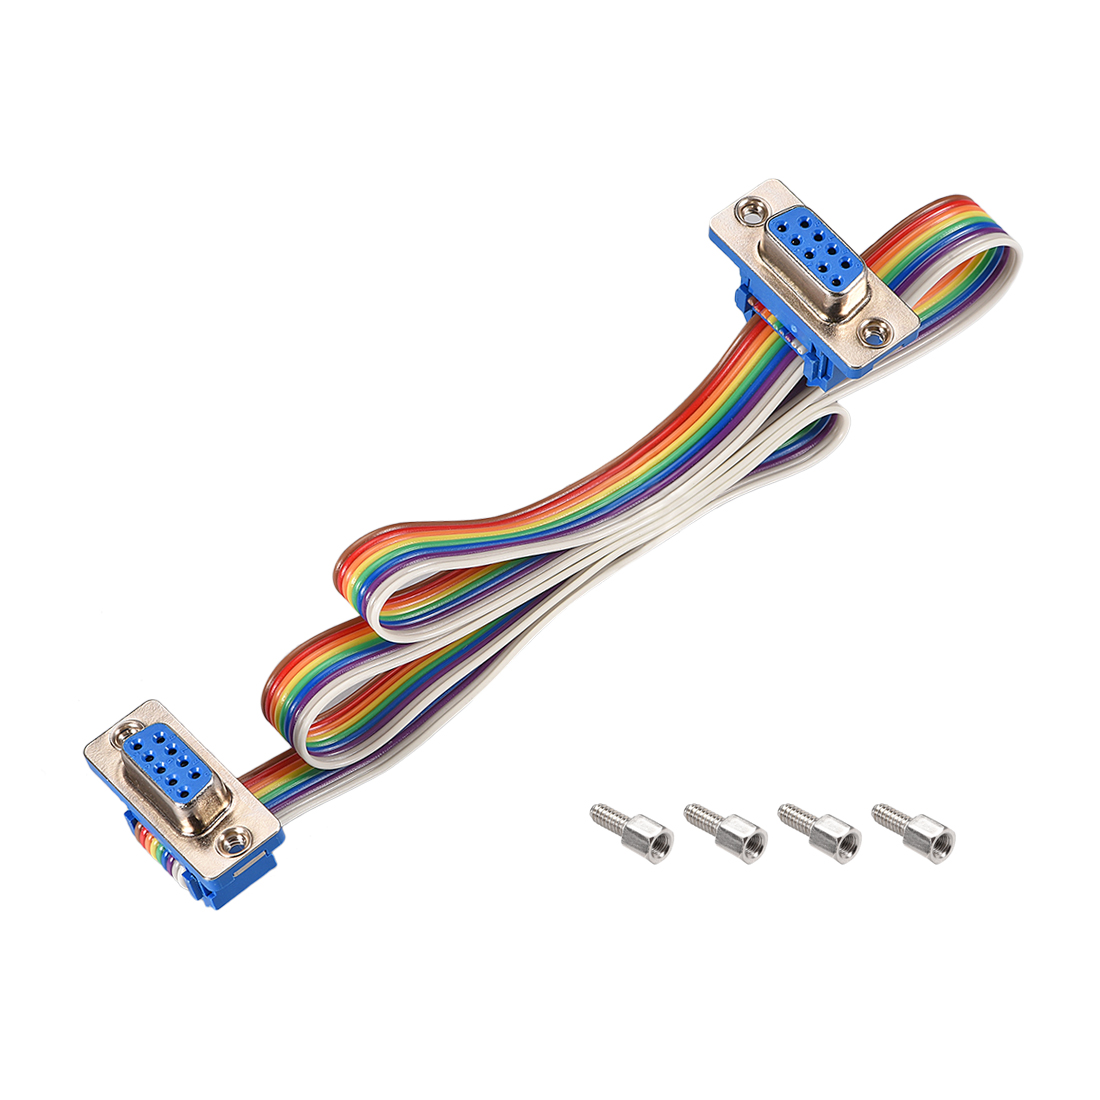 IDC Rainbow Wire Flat Ribbon Cable DB9 F/F Connector 2.54mm Pitch 19.7inch Long